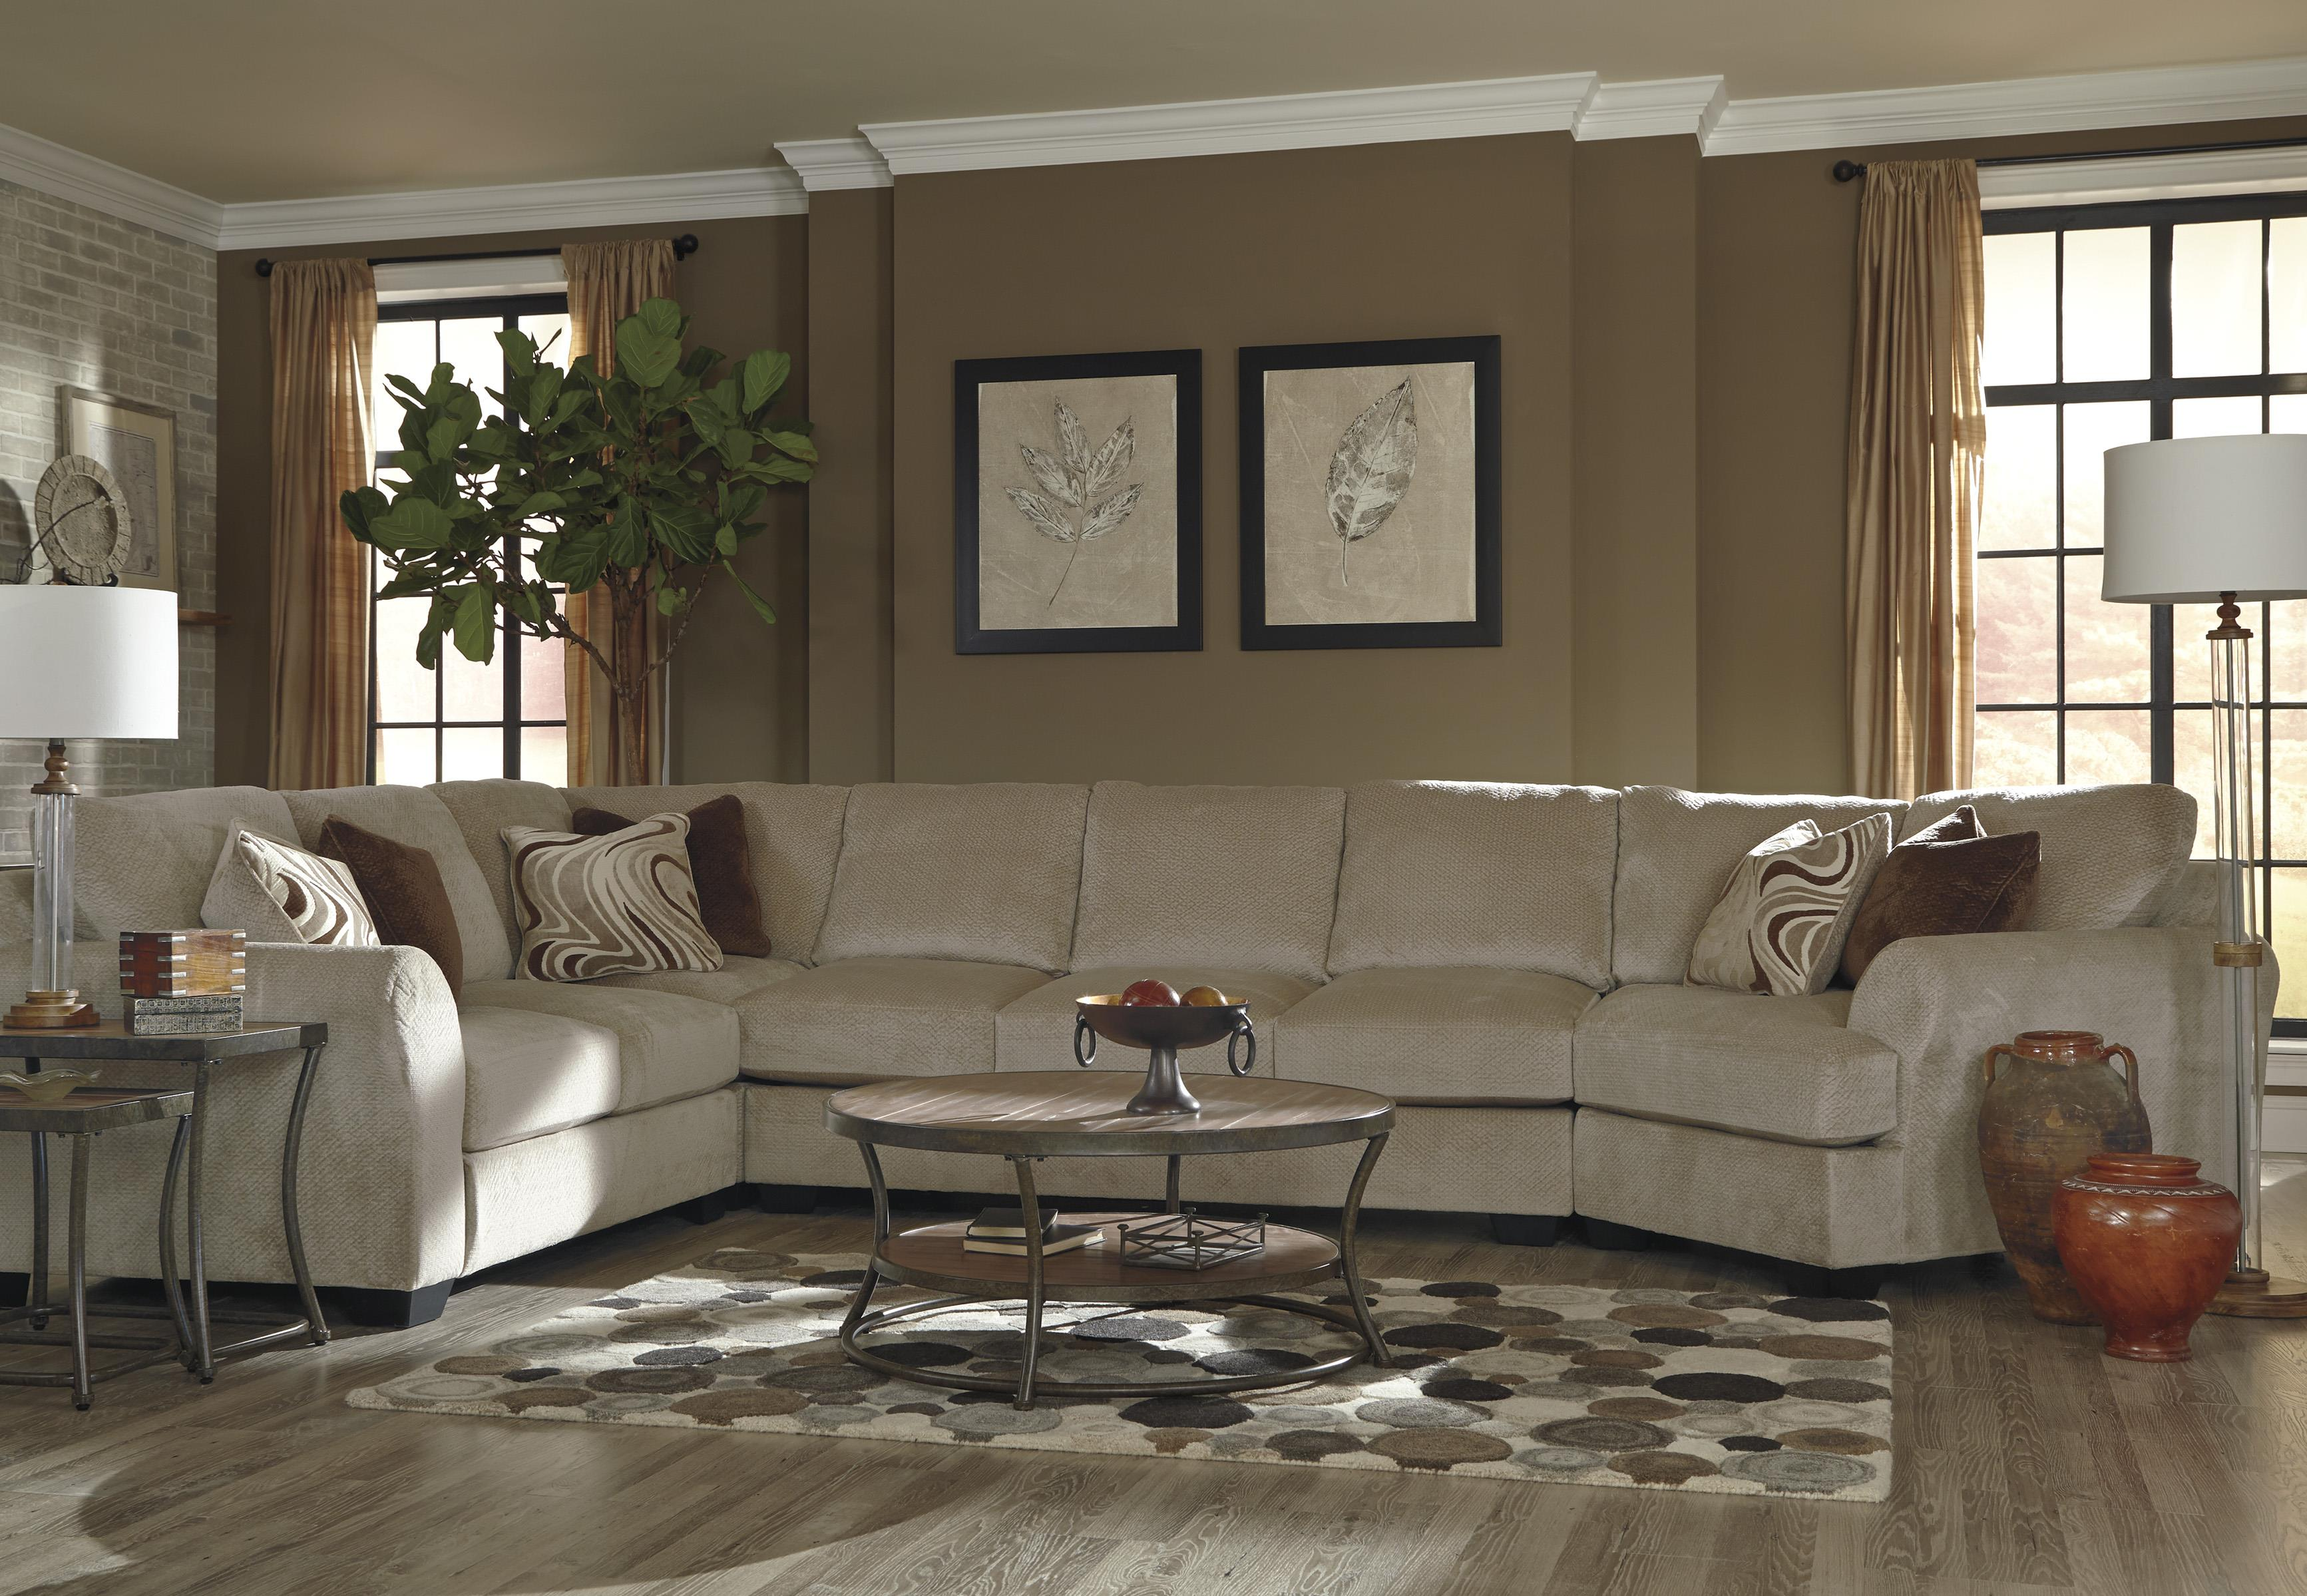 Benchcraft Hazes 4-Piece Sectional w/ Armless Sofa & Cuddler - Item Number: 6570155+77+99+75